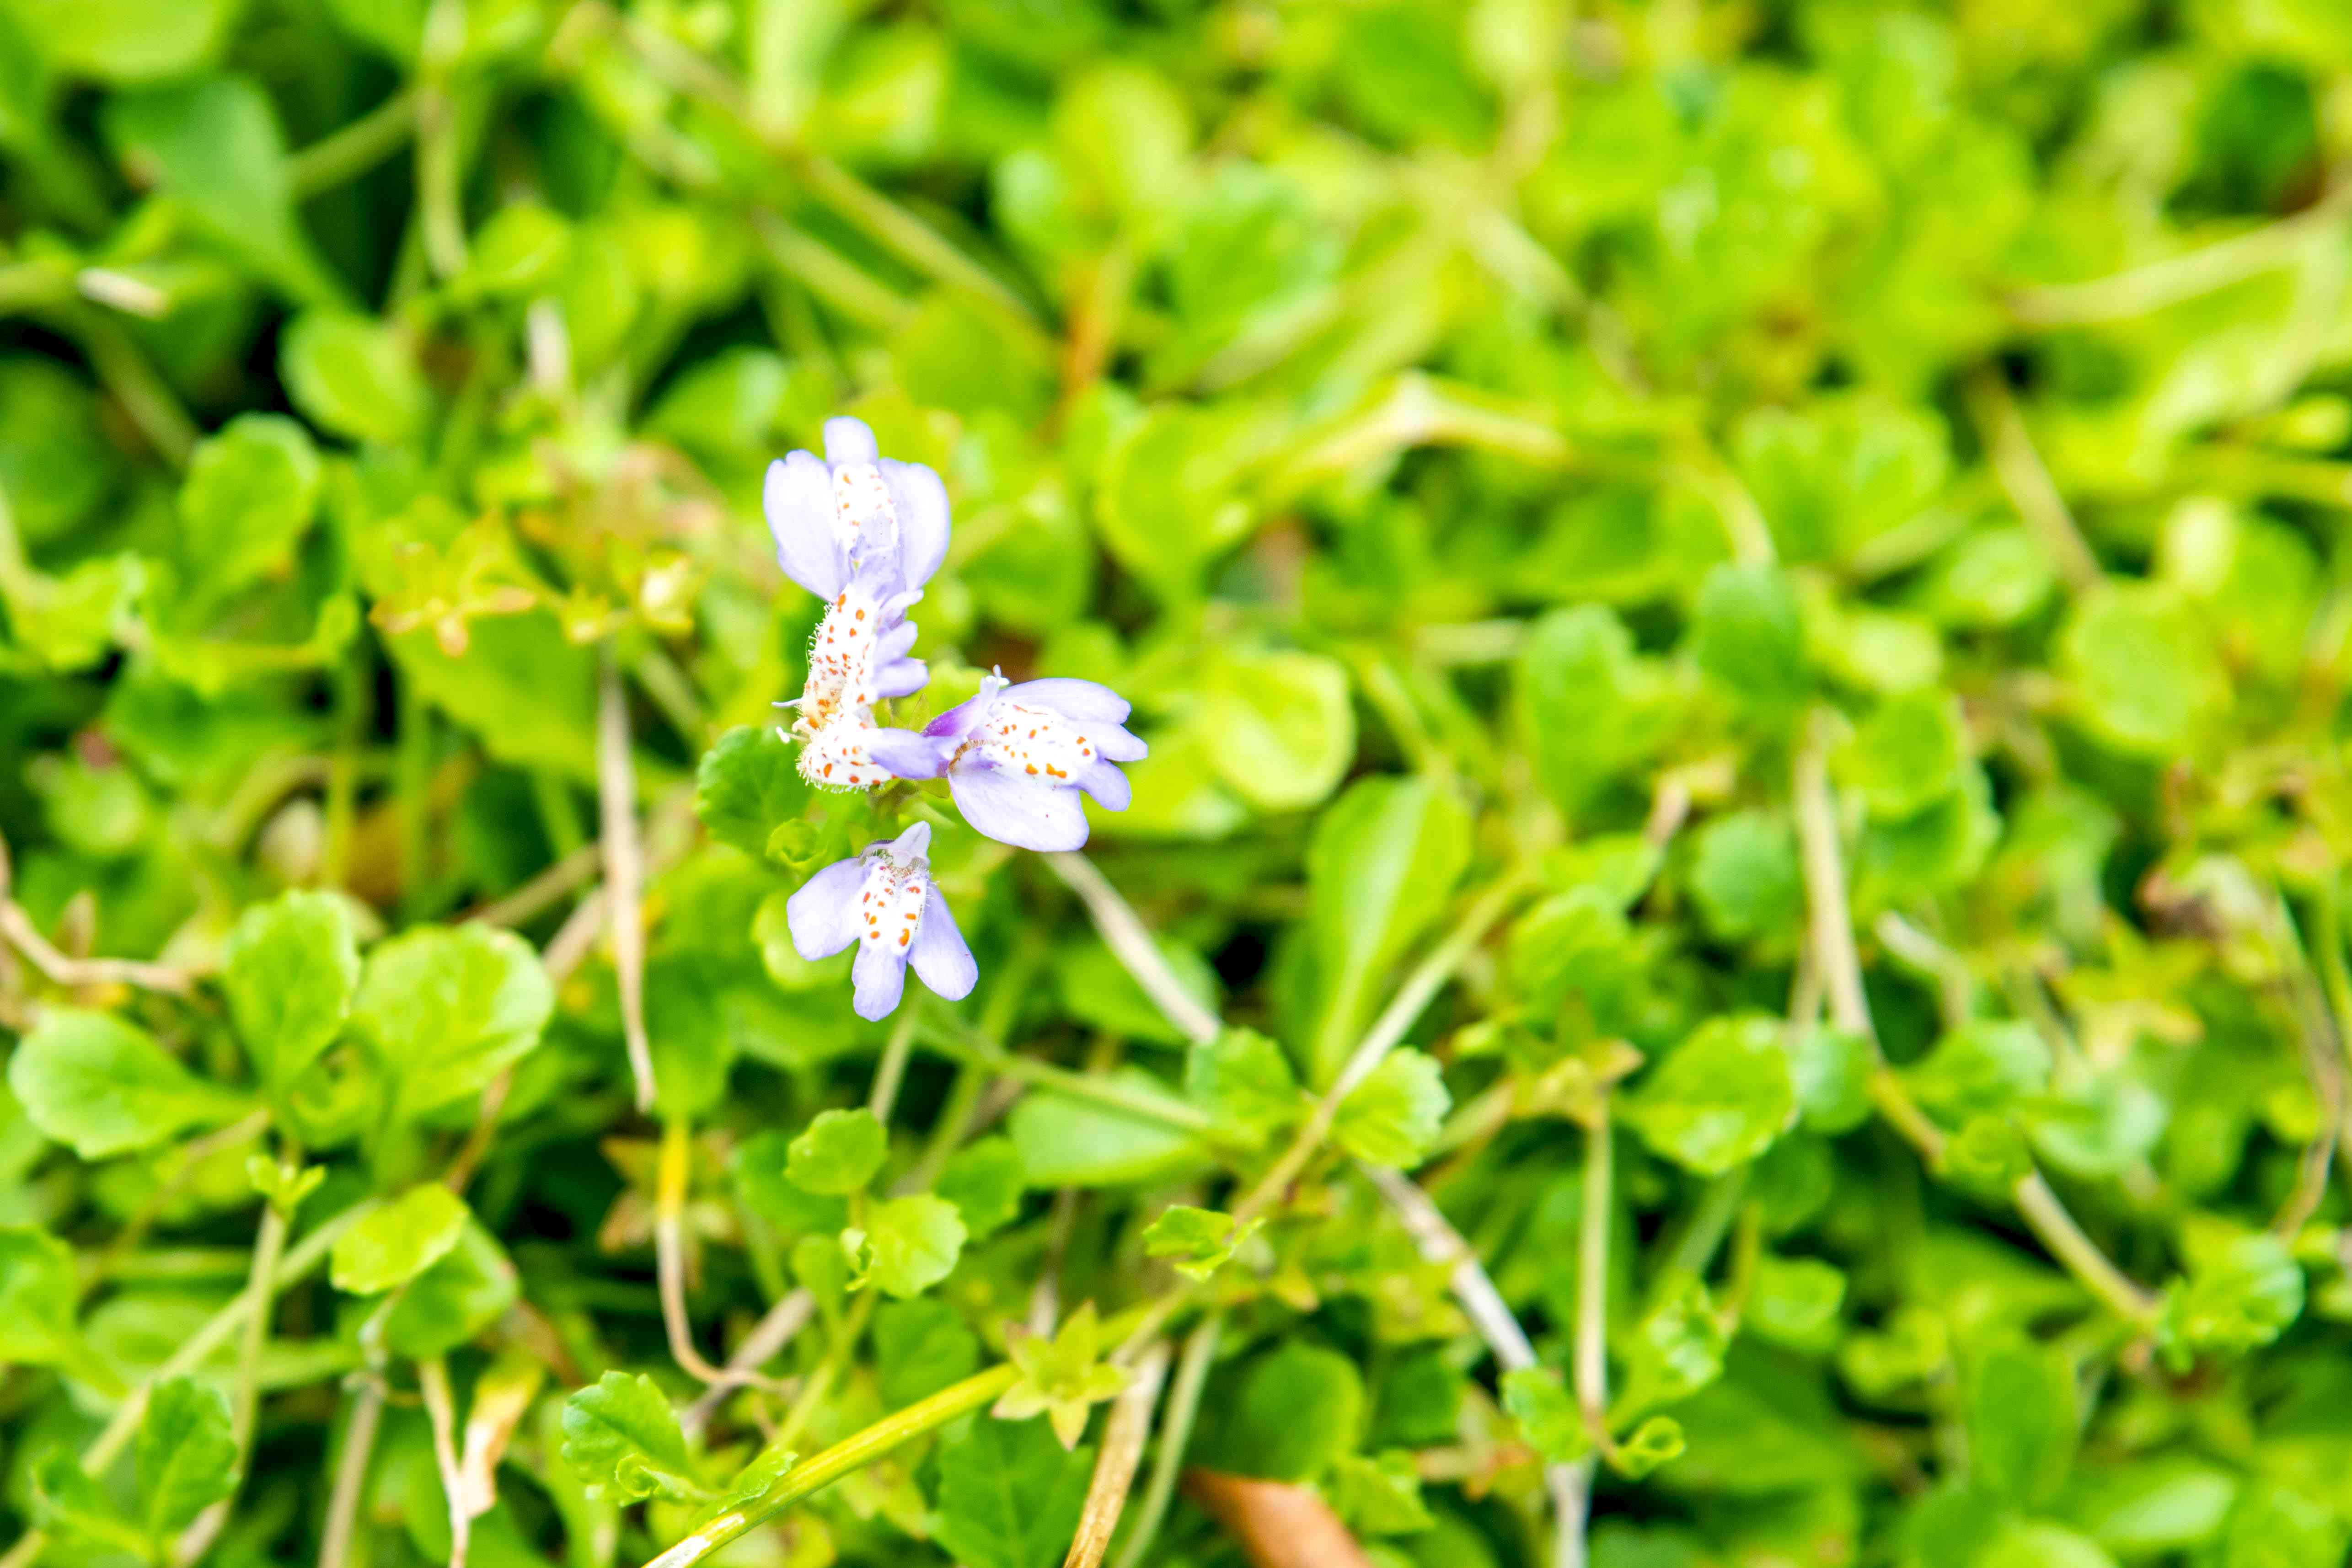 Creepig mazus ground cover with small purple and orange spotted flower surrounded by bright green leaves